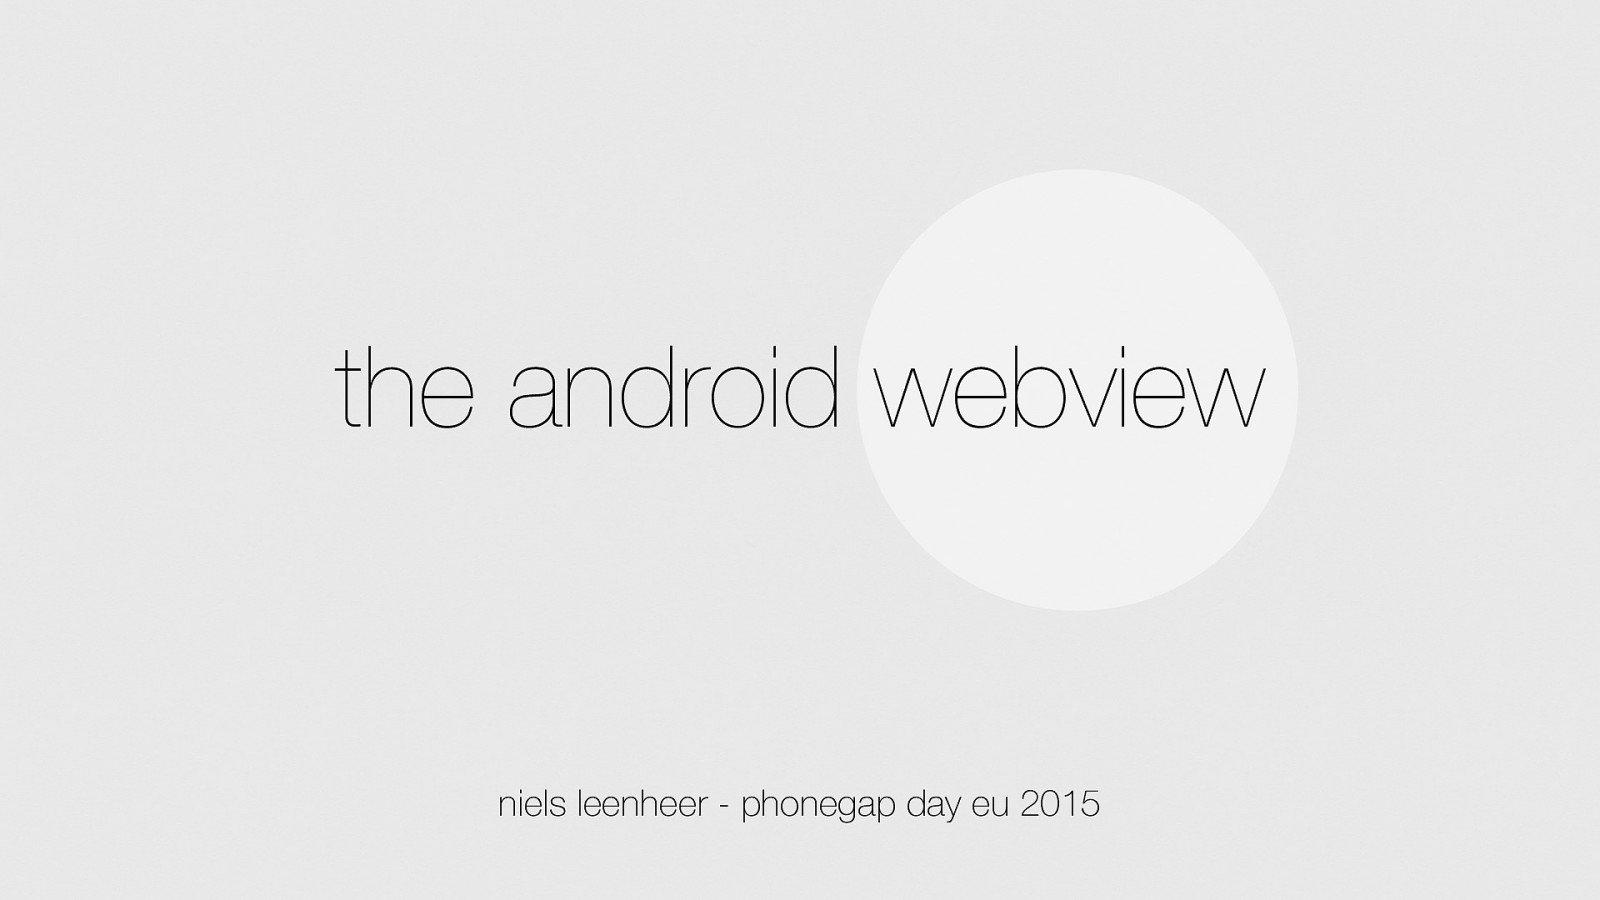 The Android Webview